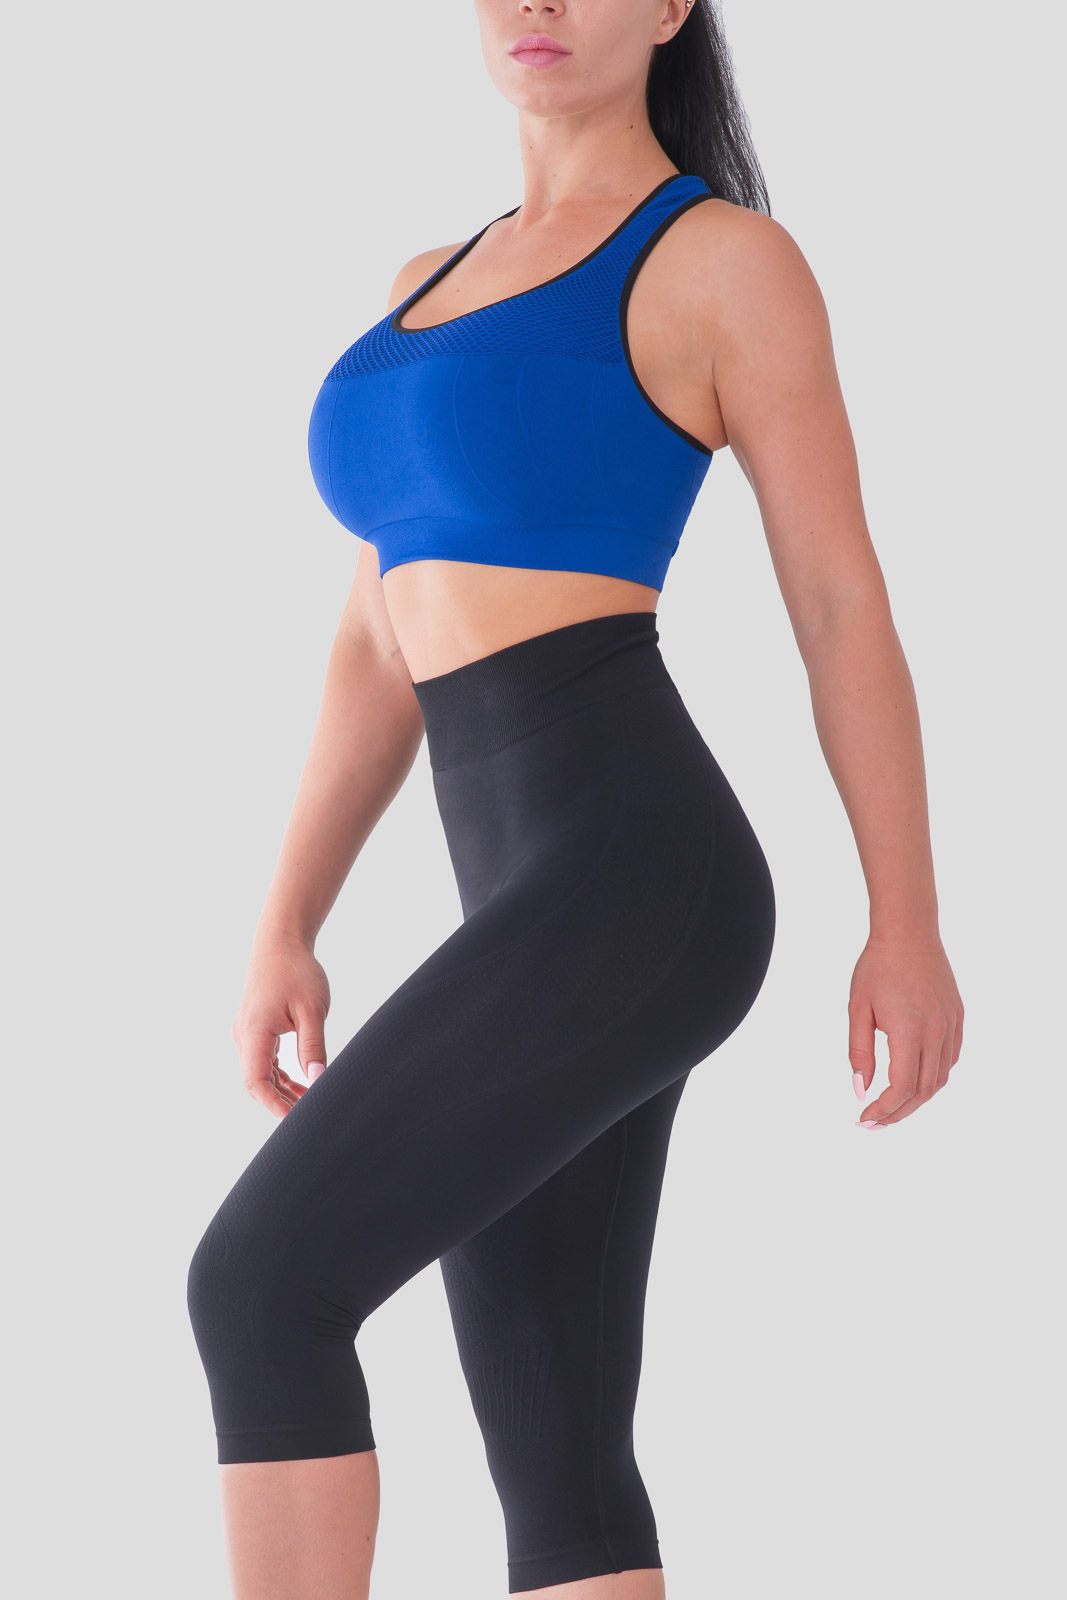 Bellissima-Women-039-s-Capri-Yoga-Pants-Seamless-High-Waisted-Workout-Leggings thumbnail 22